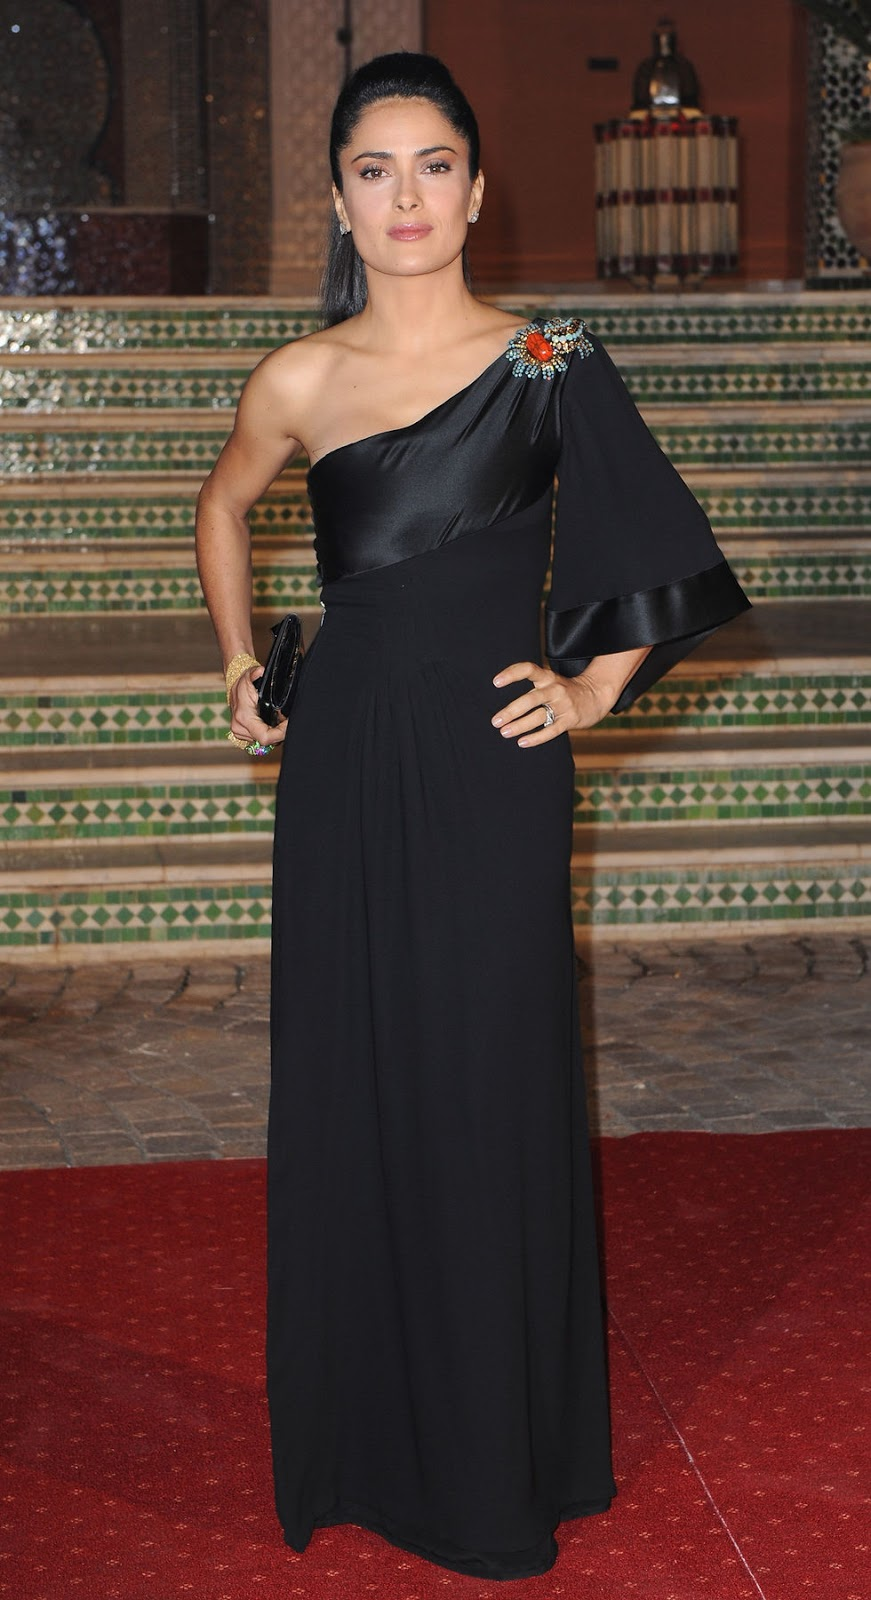 Mexican Actress Salma Hayek In Black Dress